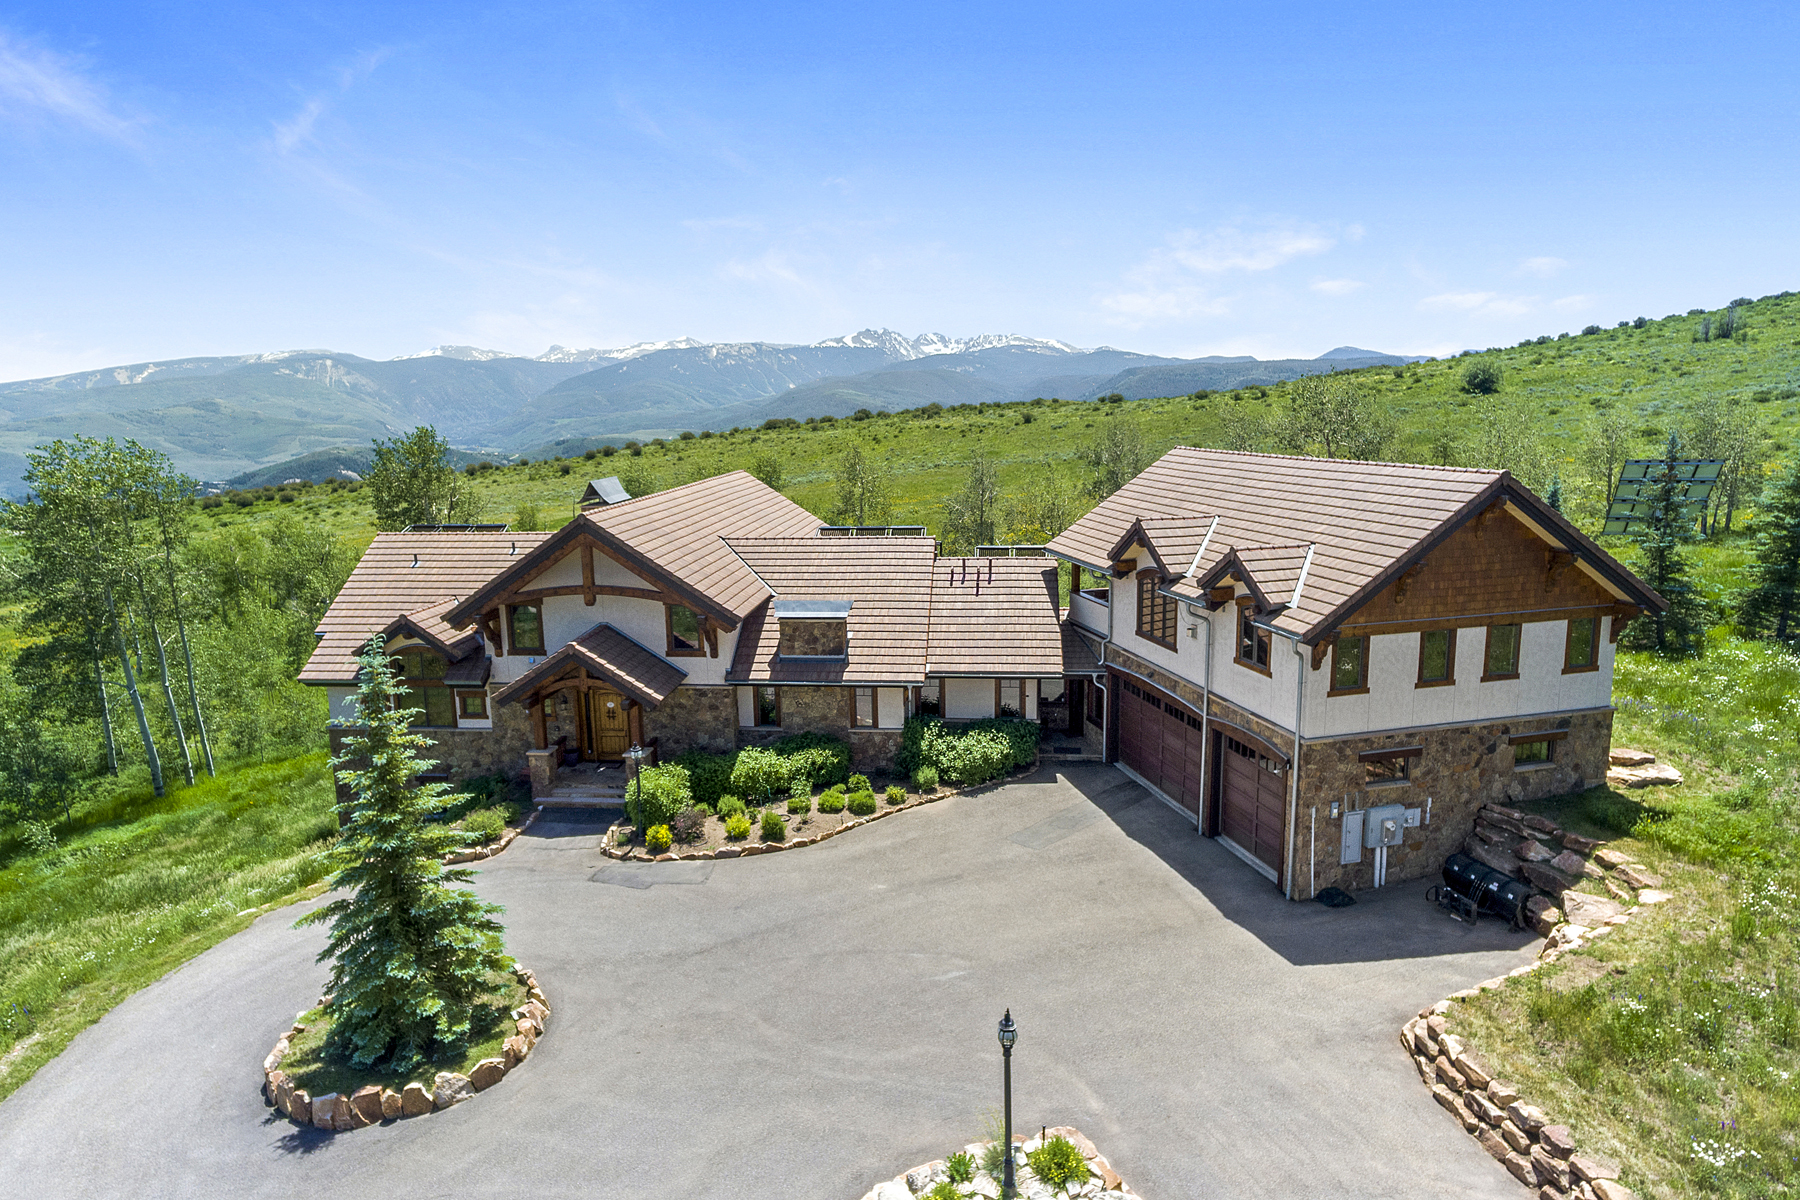 Single Family Homes for Sale at Sweeping views plus acreage on Bellyache Ridge 5458 Bellyache Ridge Rd. Wolcott, Colorado 81655 United States